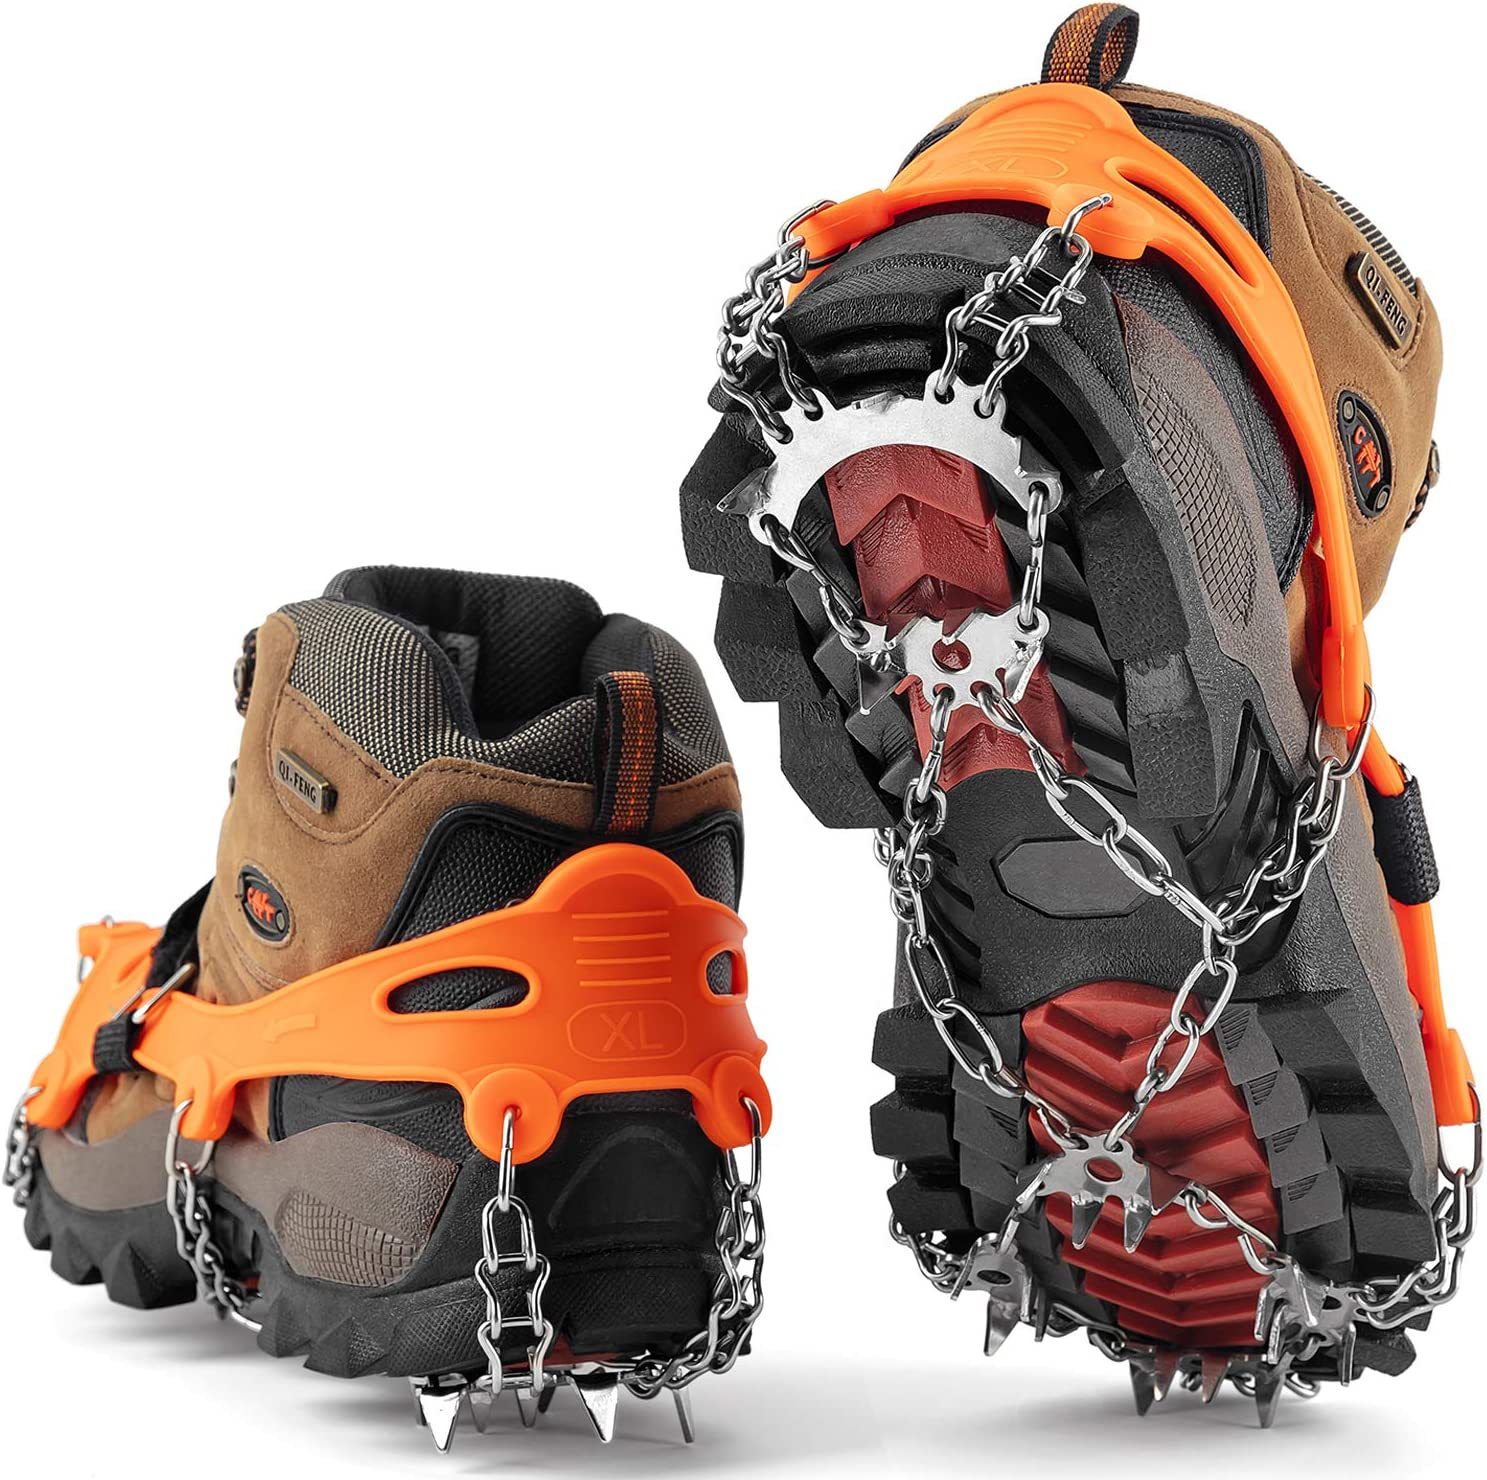 SHARKMOUTH Crampons Ice Traction Cleats, Ice Snow Grips for Boots and Shoes, Anti Slip 23 Stainless Steel Spikes, Safe Protect for Walking, Jogging, Climbing or Hiking on Snow and Ice